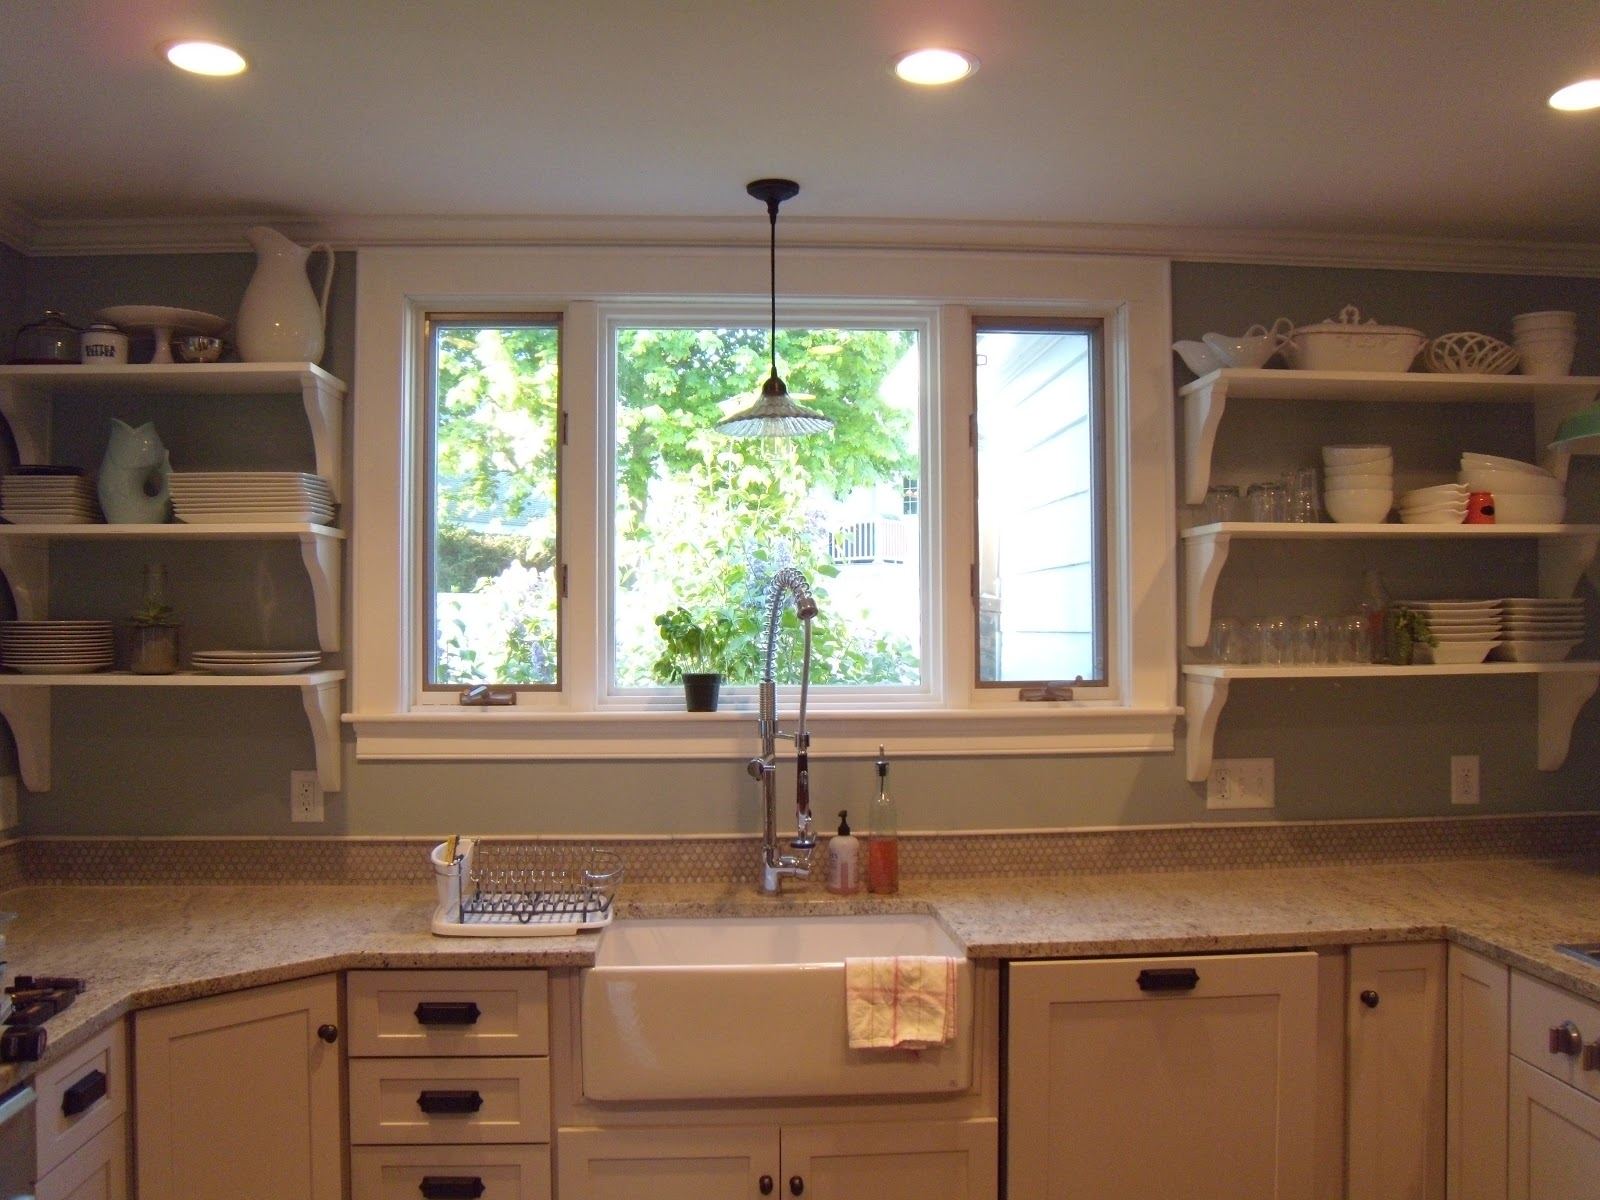 The Benefits Of Open Shelving In The Kitchen: Kavvie Kitchen: Open Shelving #kitchenrenovation